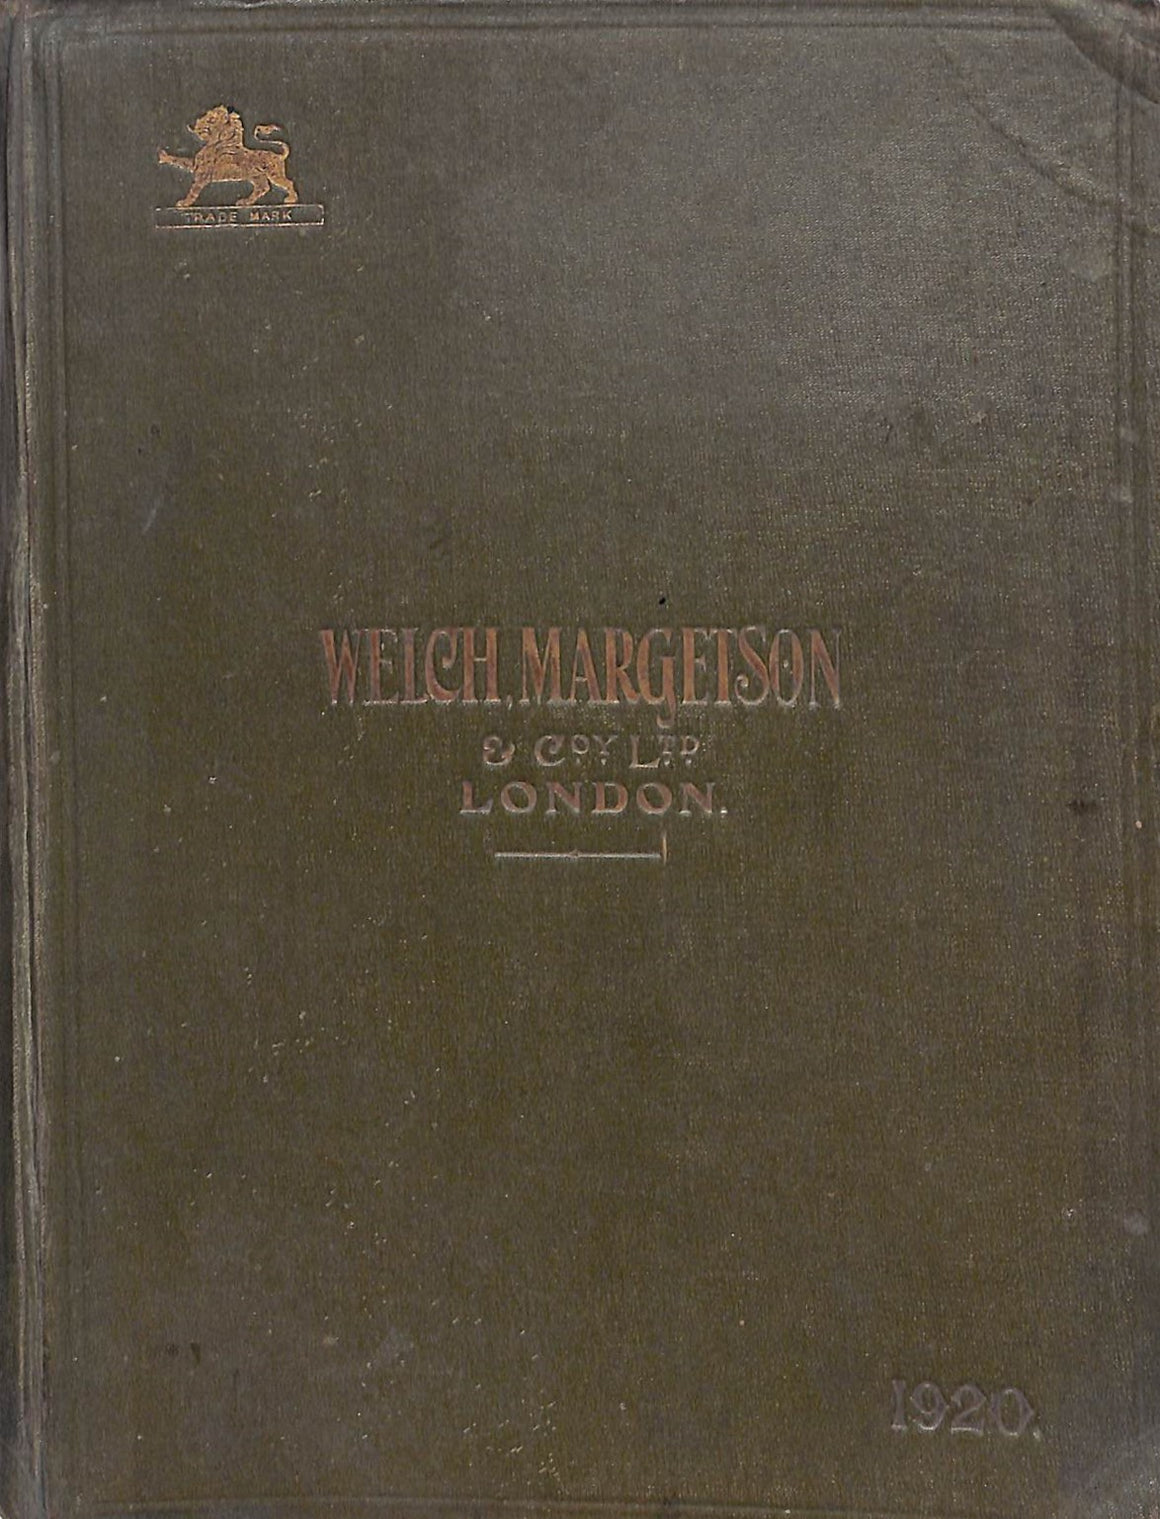 Welch, Margetson c1920 (206) pp Catalogue